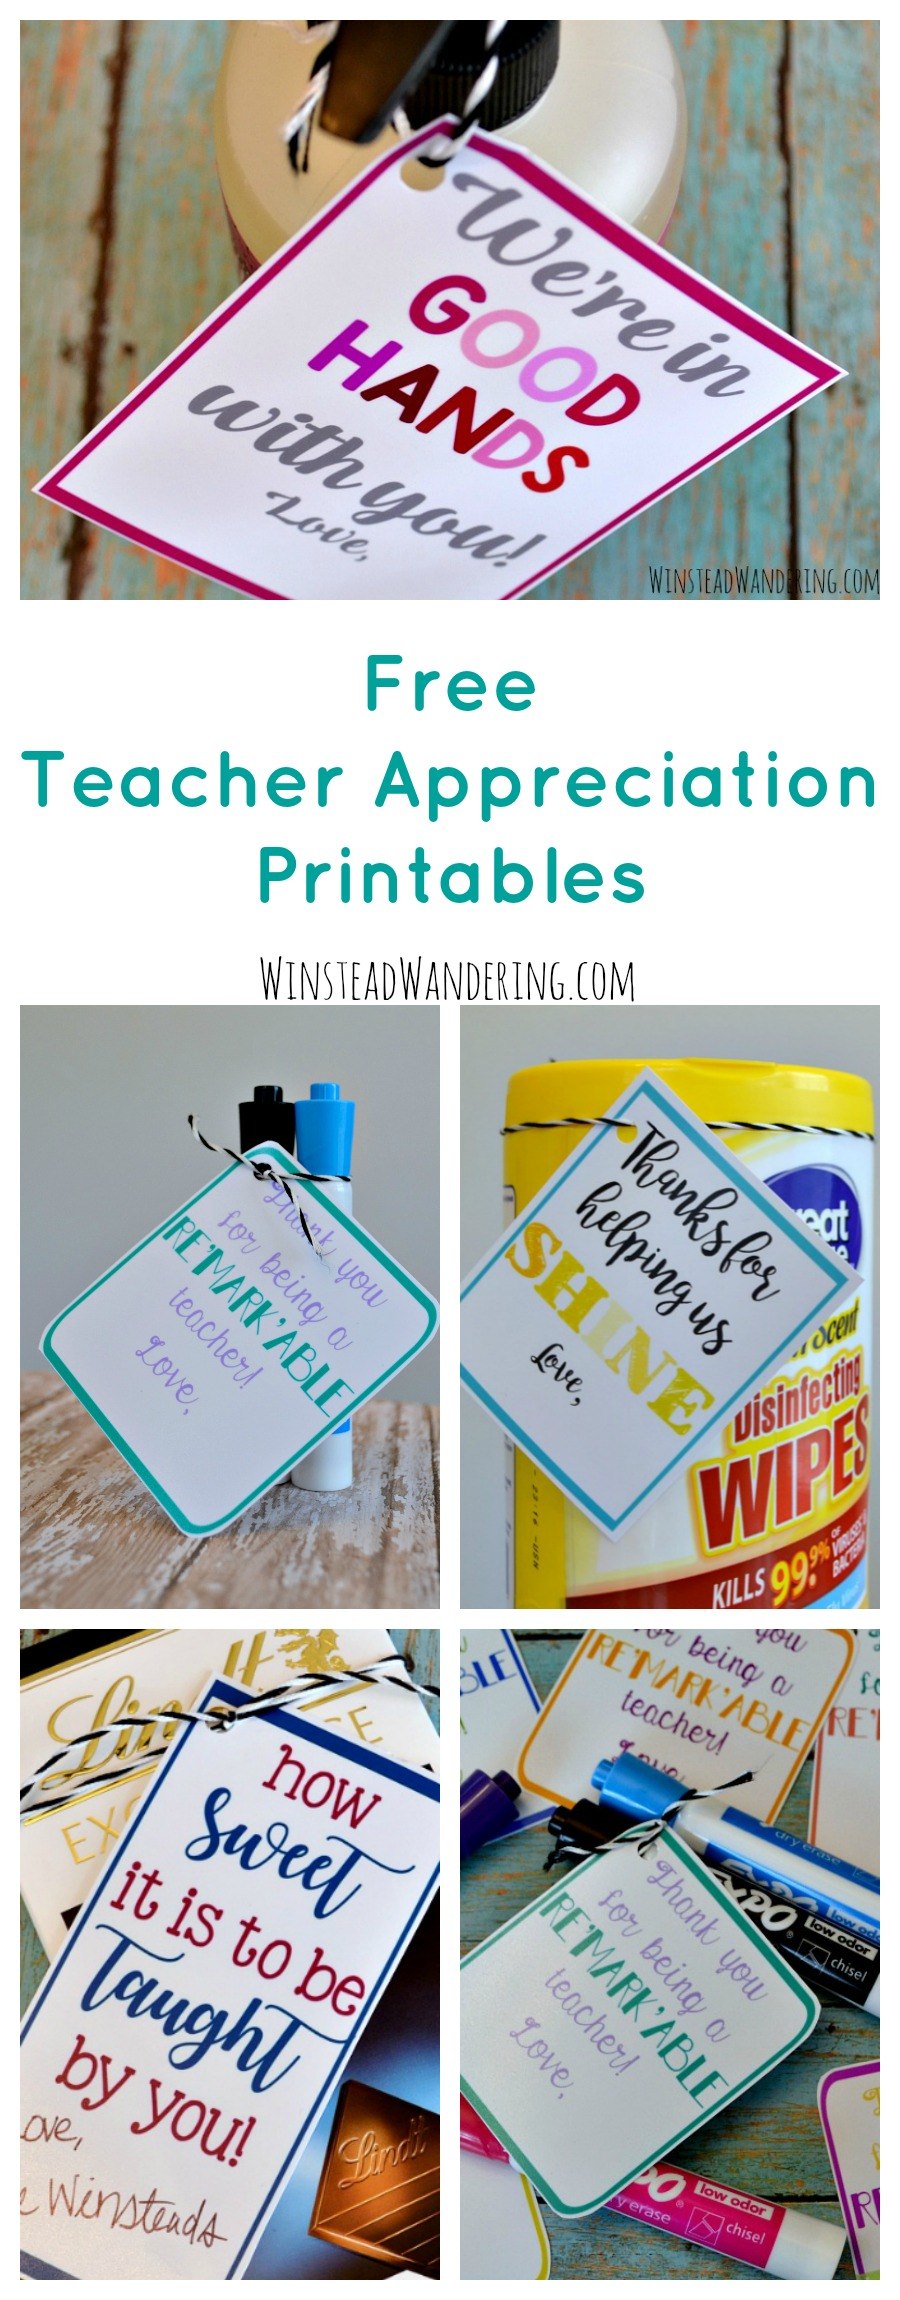 These adorable printables are perfect for showing teacher appreciation any time of year. There are a ton of cute gift ideas, too!